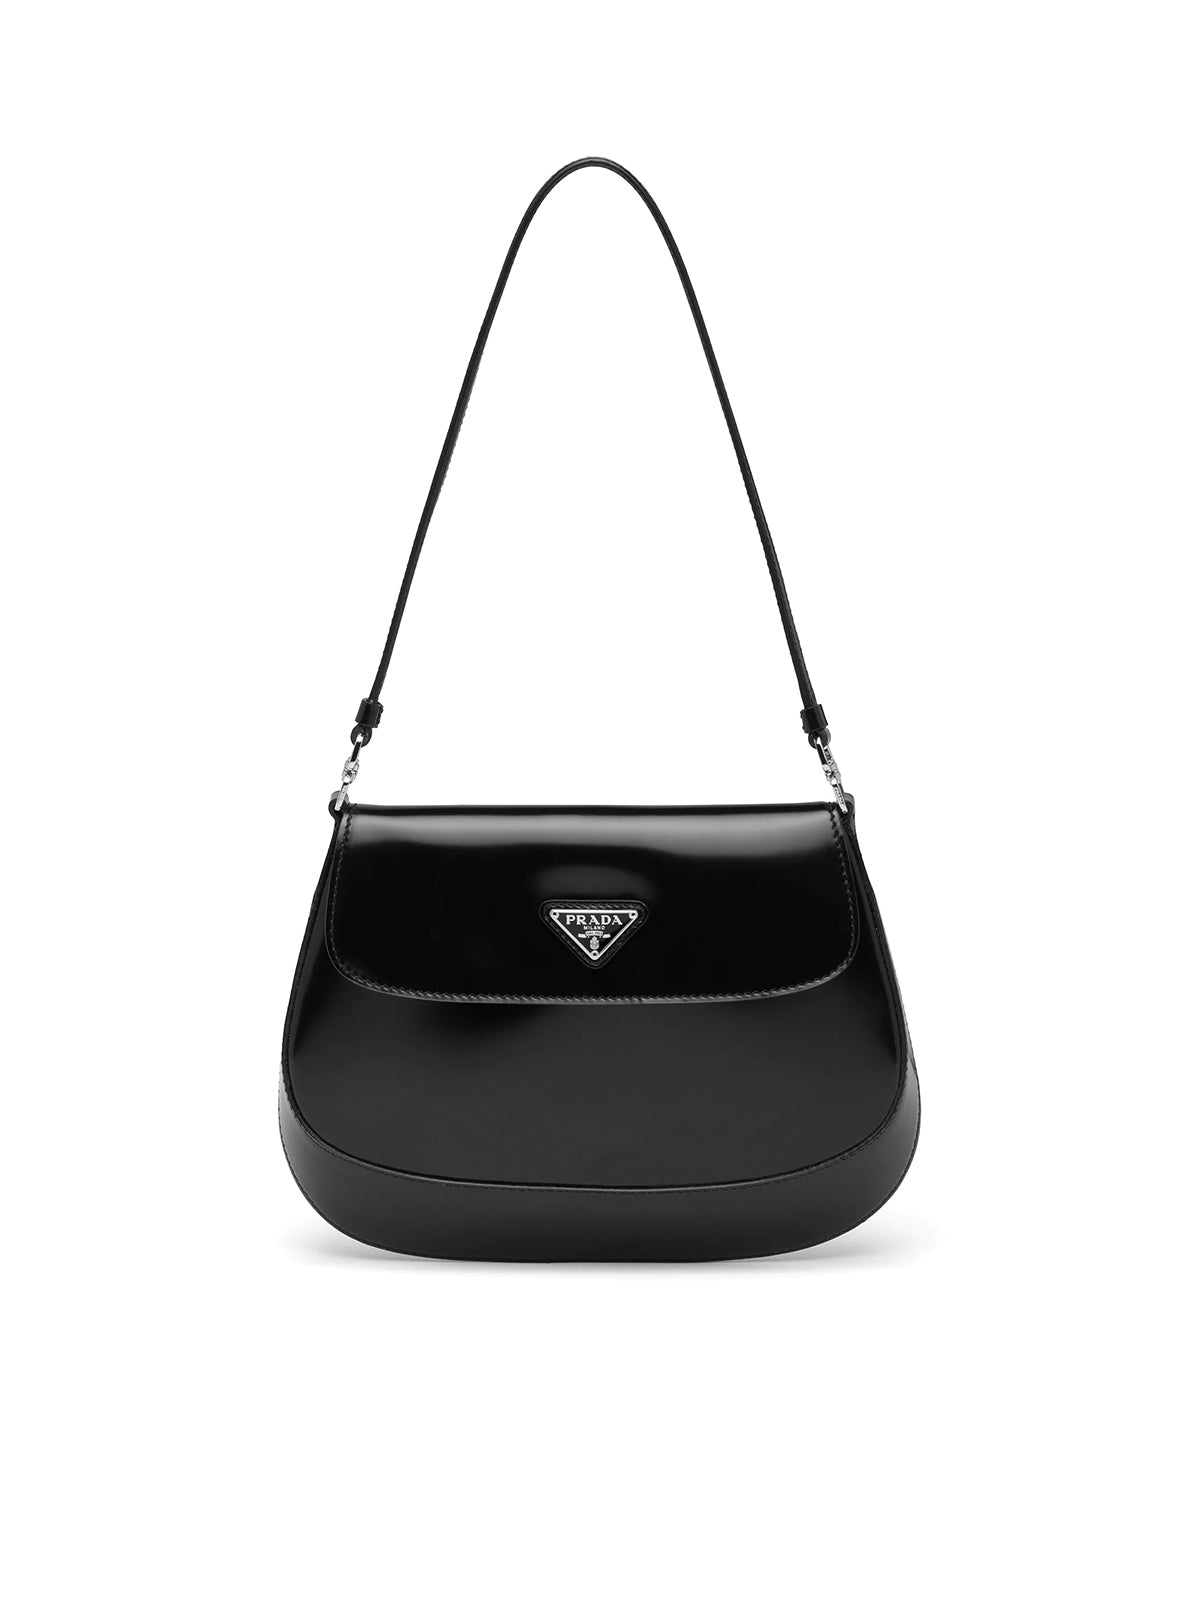 Prada Cleo brushed leather shoulder bag with flap